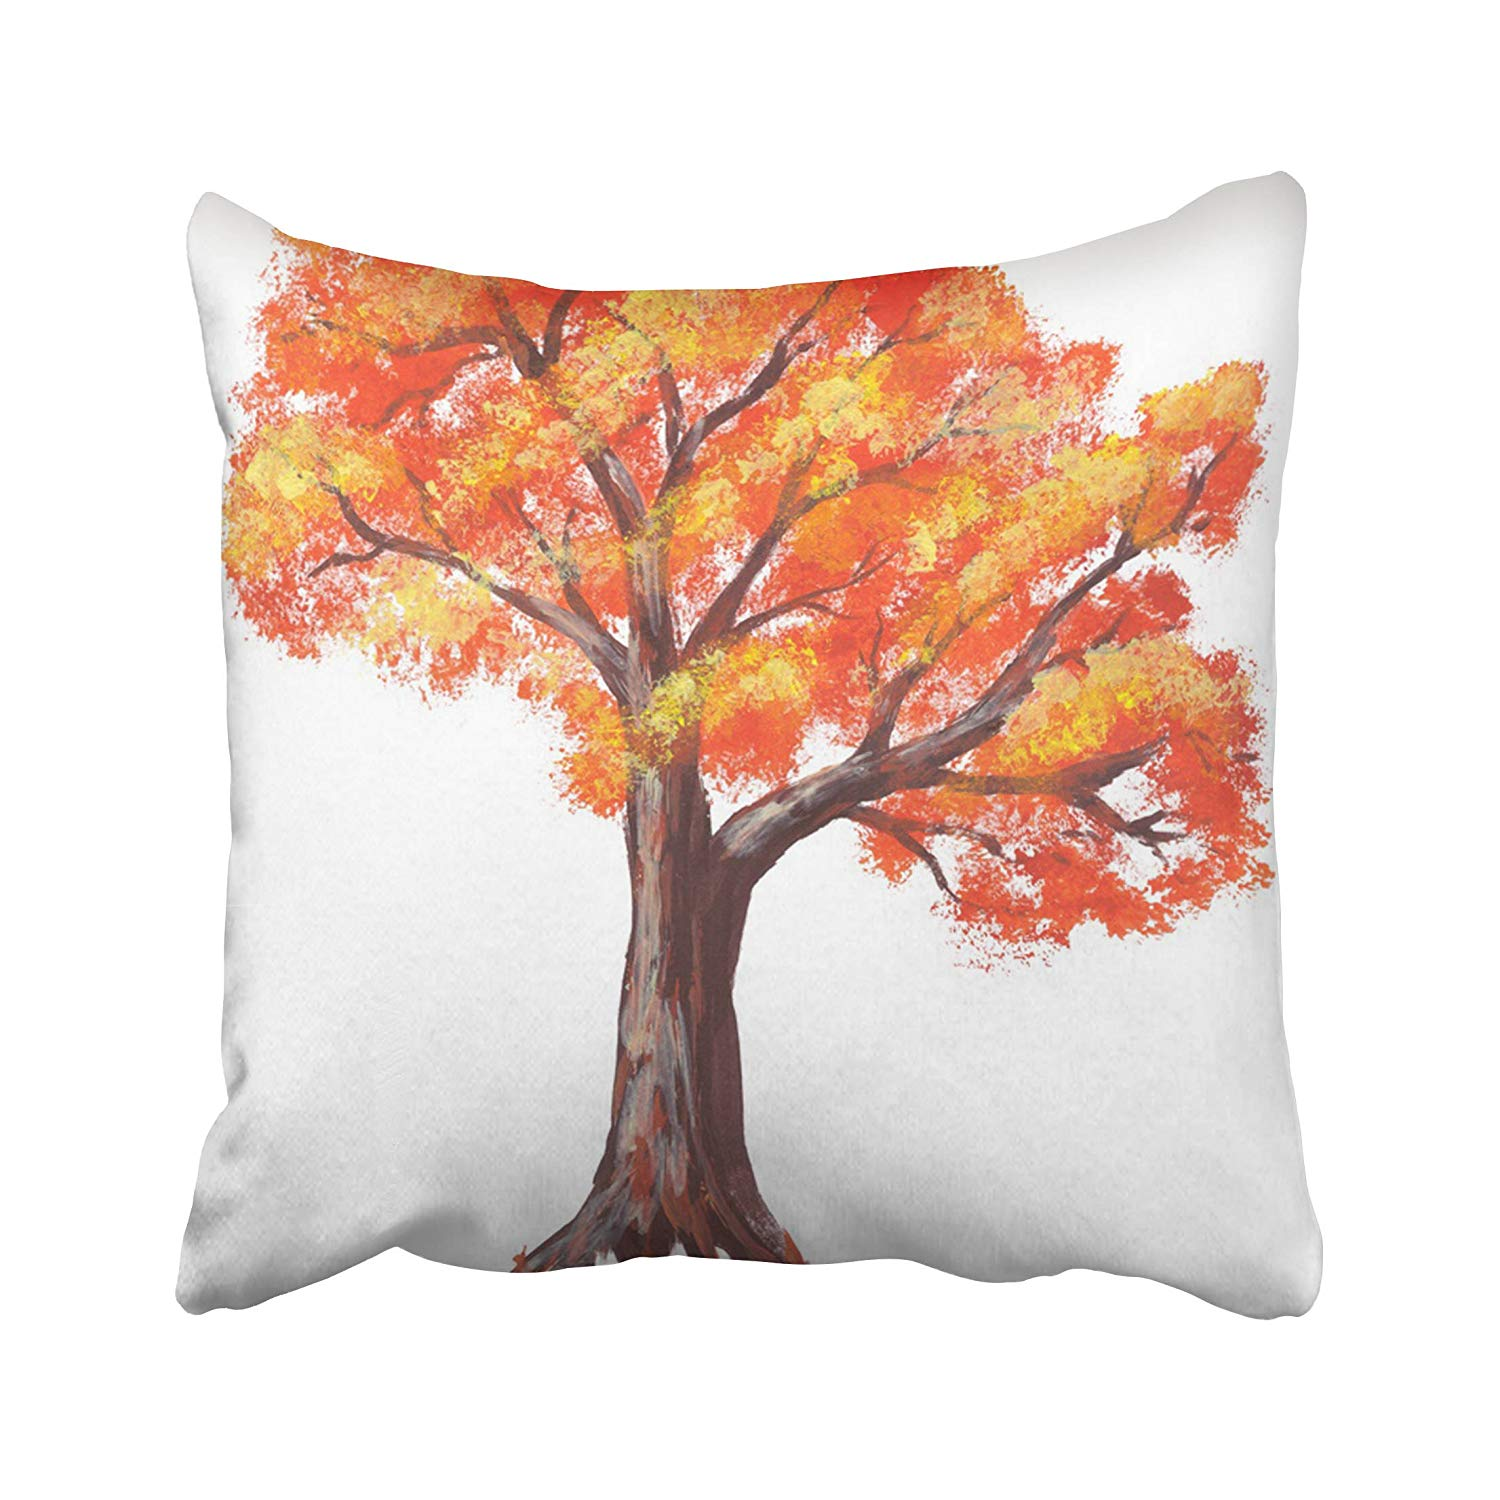 WOPOP Colorful Drawn Acrylic Vibrant Autumn Red Orange Tree White Watercolor Abstract Pillowcase Pillow Cushion Cover 16x16 inches